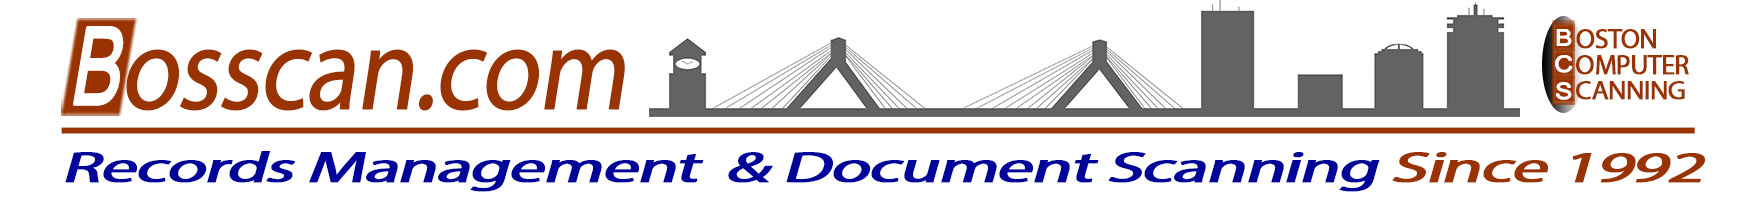 Document Scanning Boston Since 1992